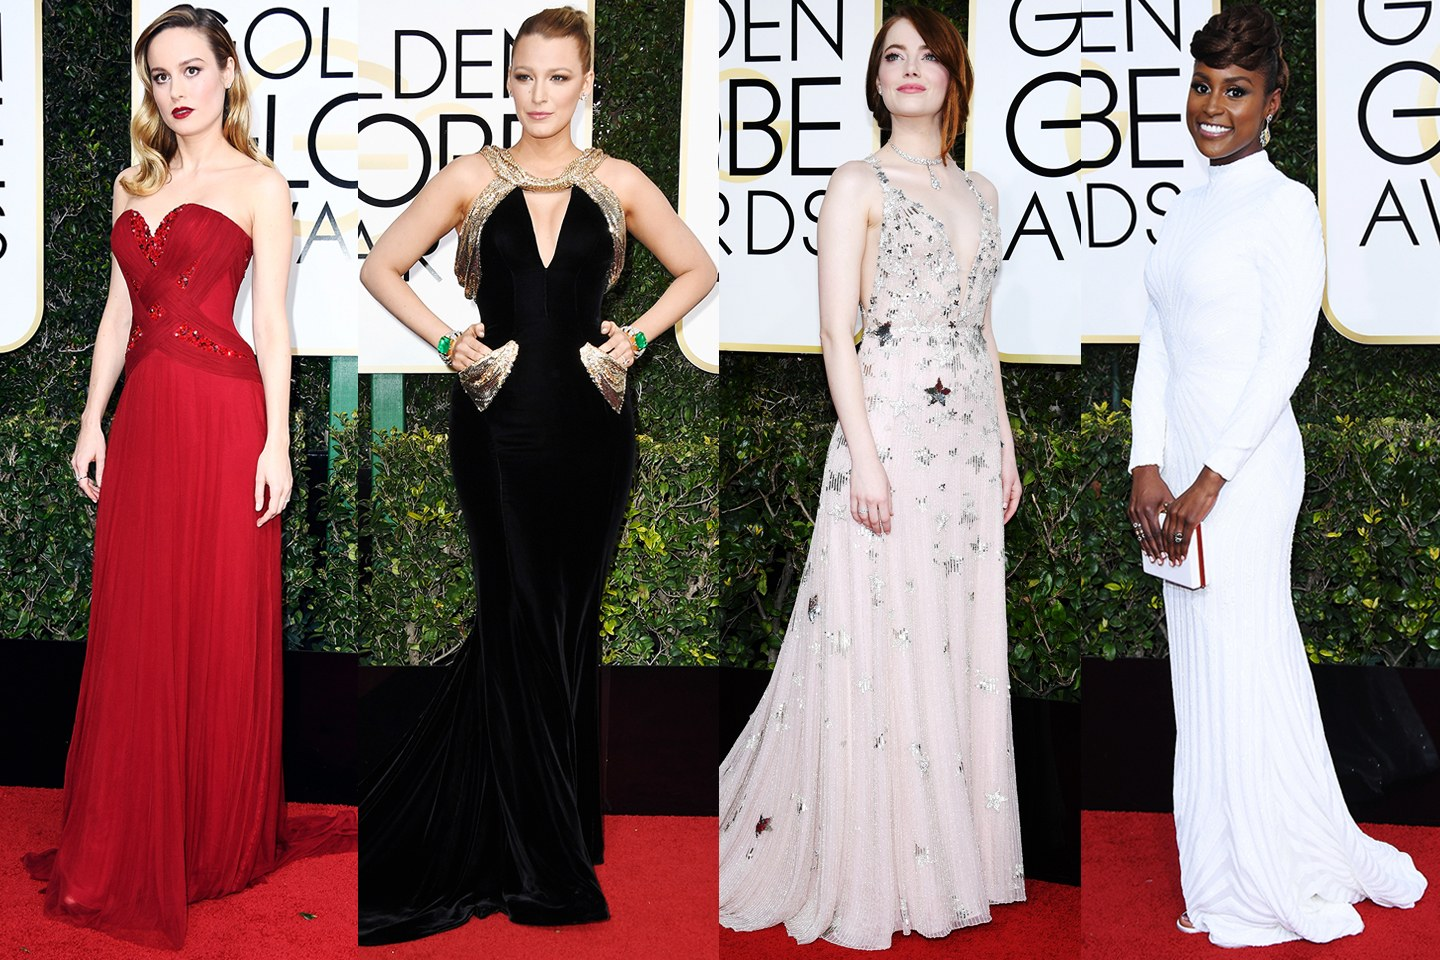 16 Golden Globes 2017 dresses you NEED to see! – SeeThru